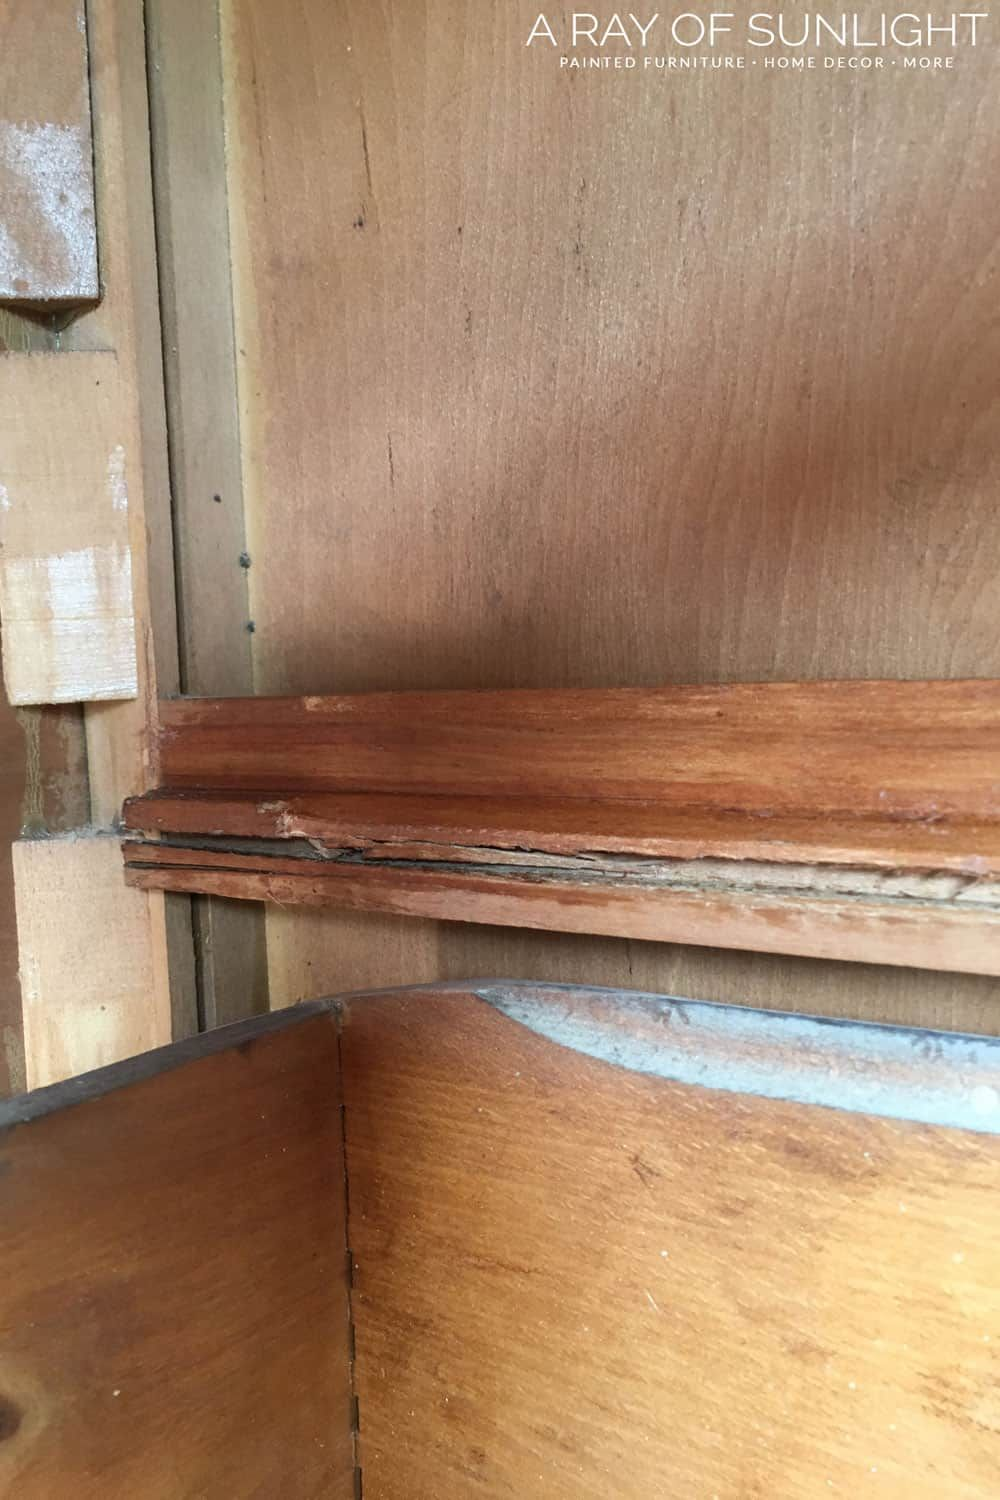 How To Fix Old Dresser Drawers That Stick Dresser Drawer Slides Old Dresser Drawers Old Dressers